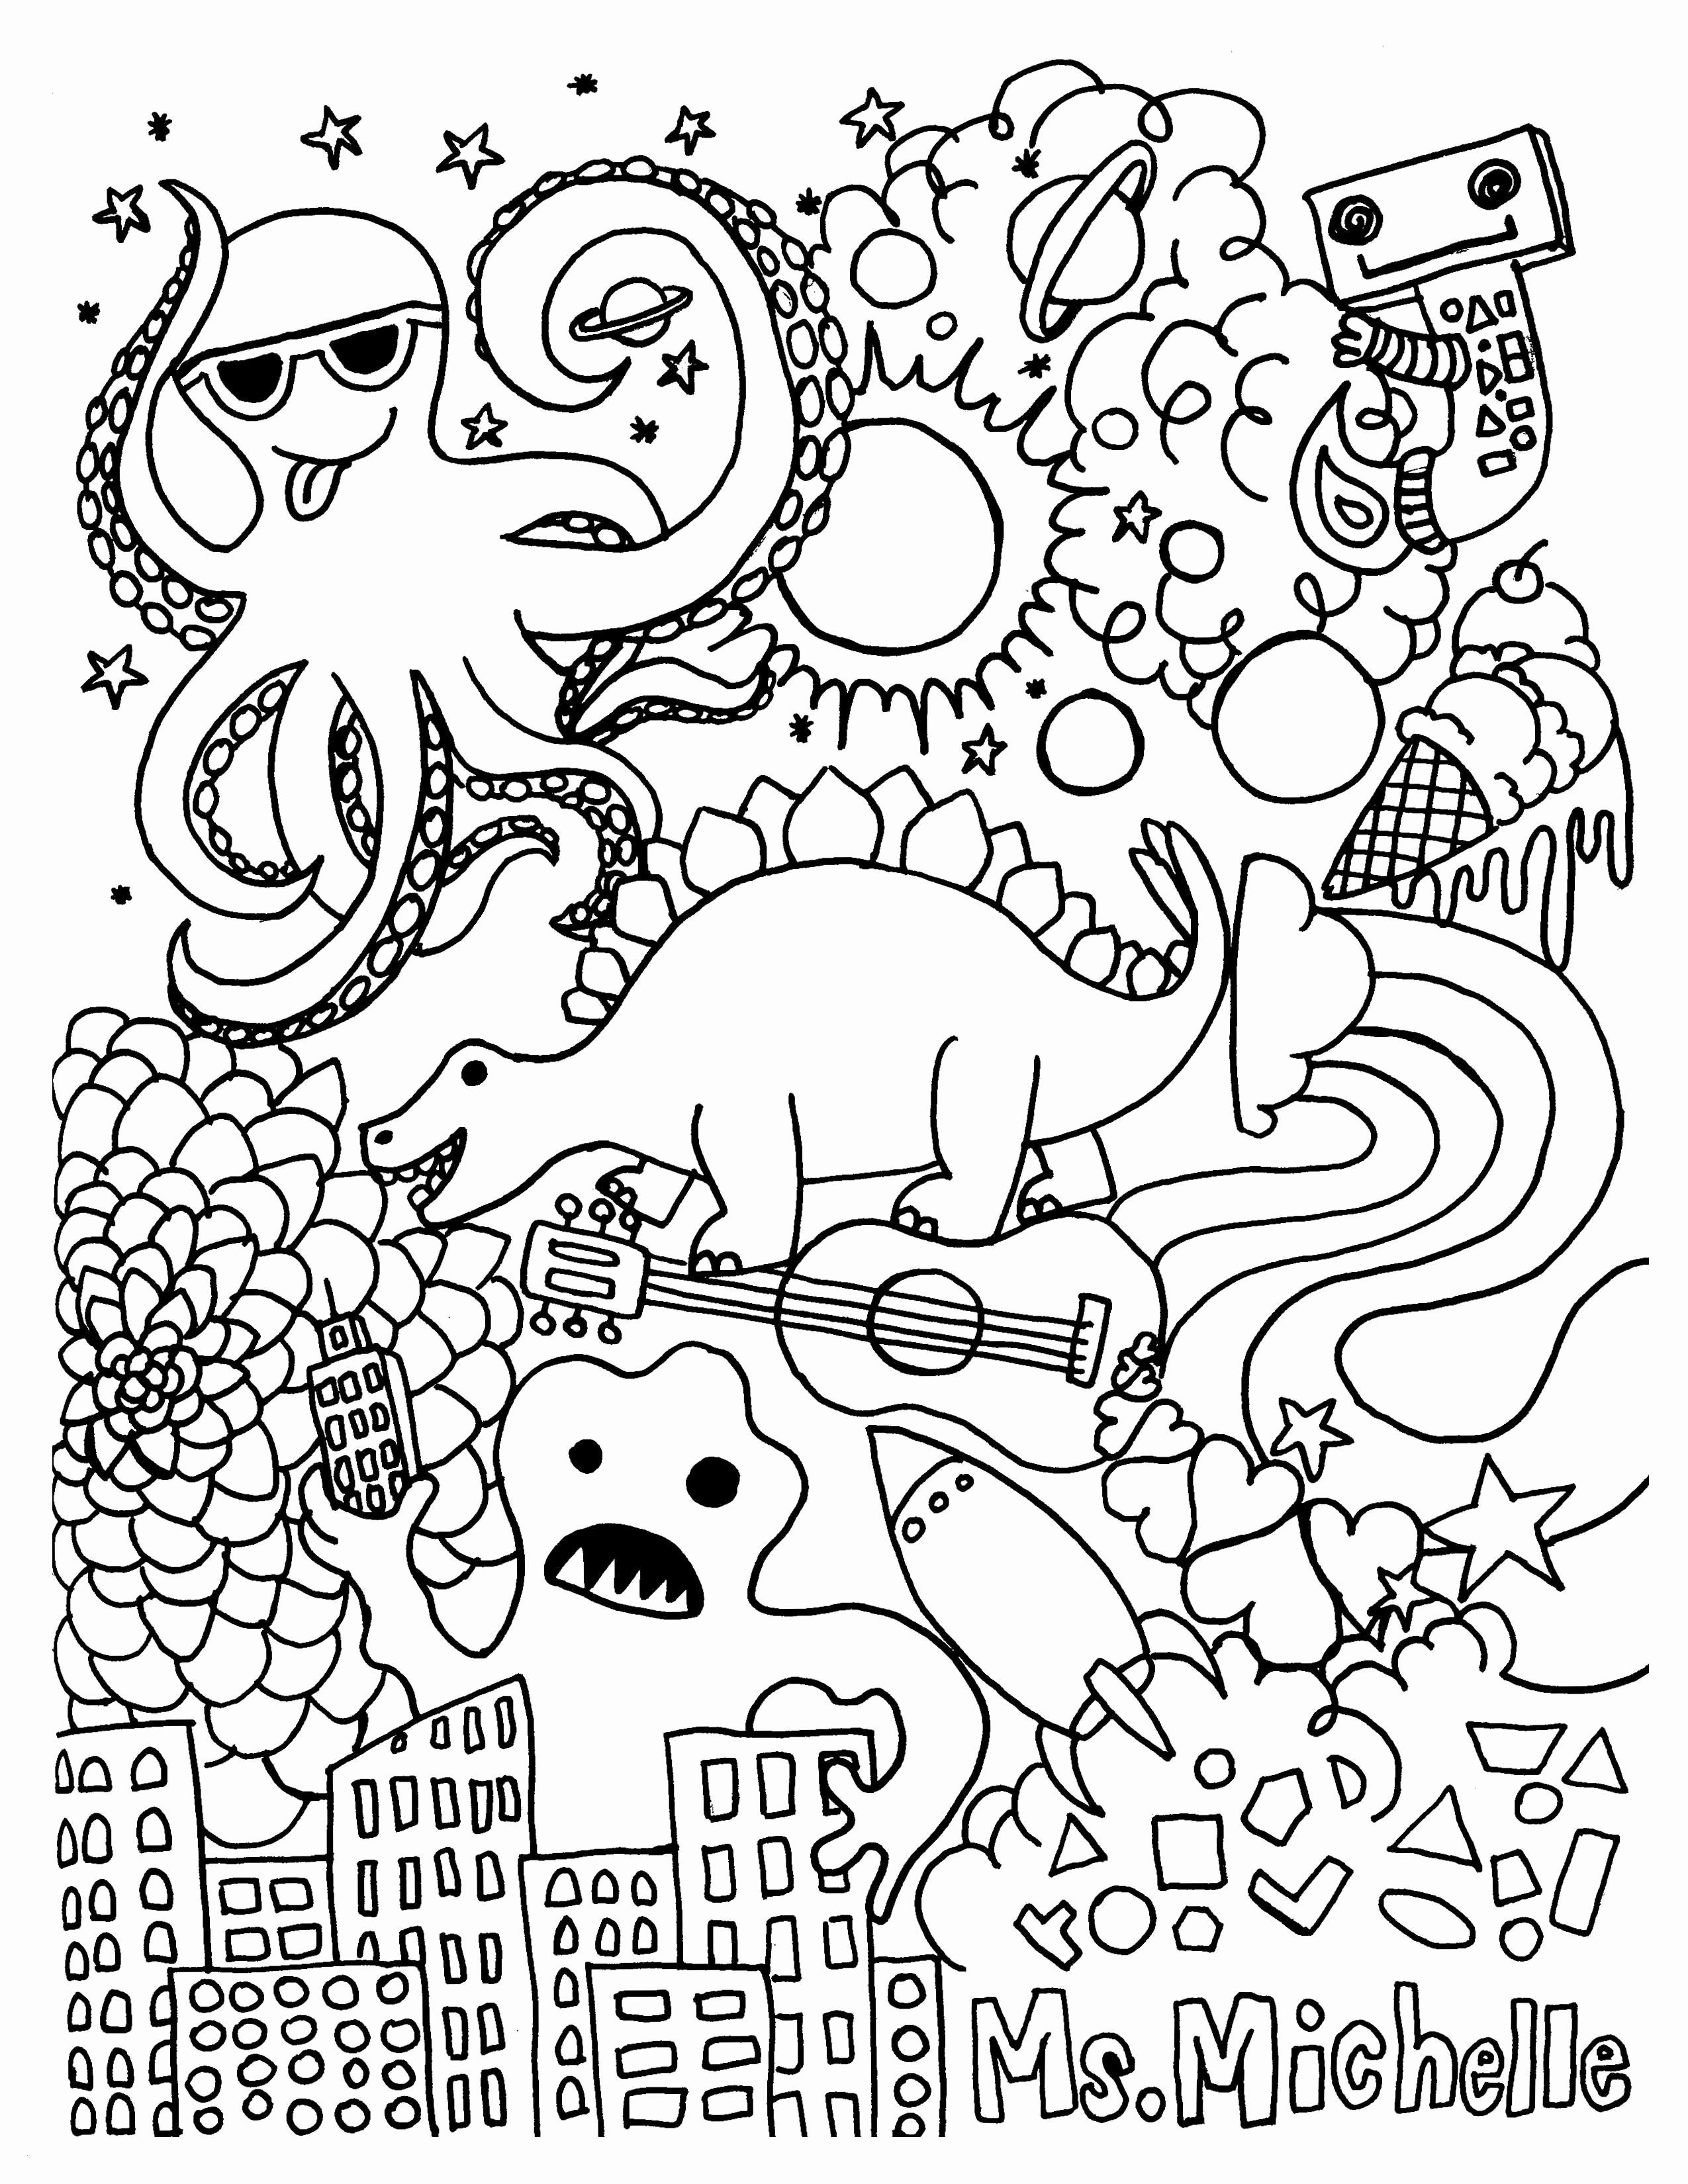 folk art coloring pages Collection-Grandparents Day Printable Coloring Pages Mulan Coloring Pages Awesome Free Coloring Pages for Halloween 18-i